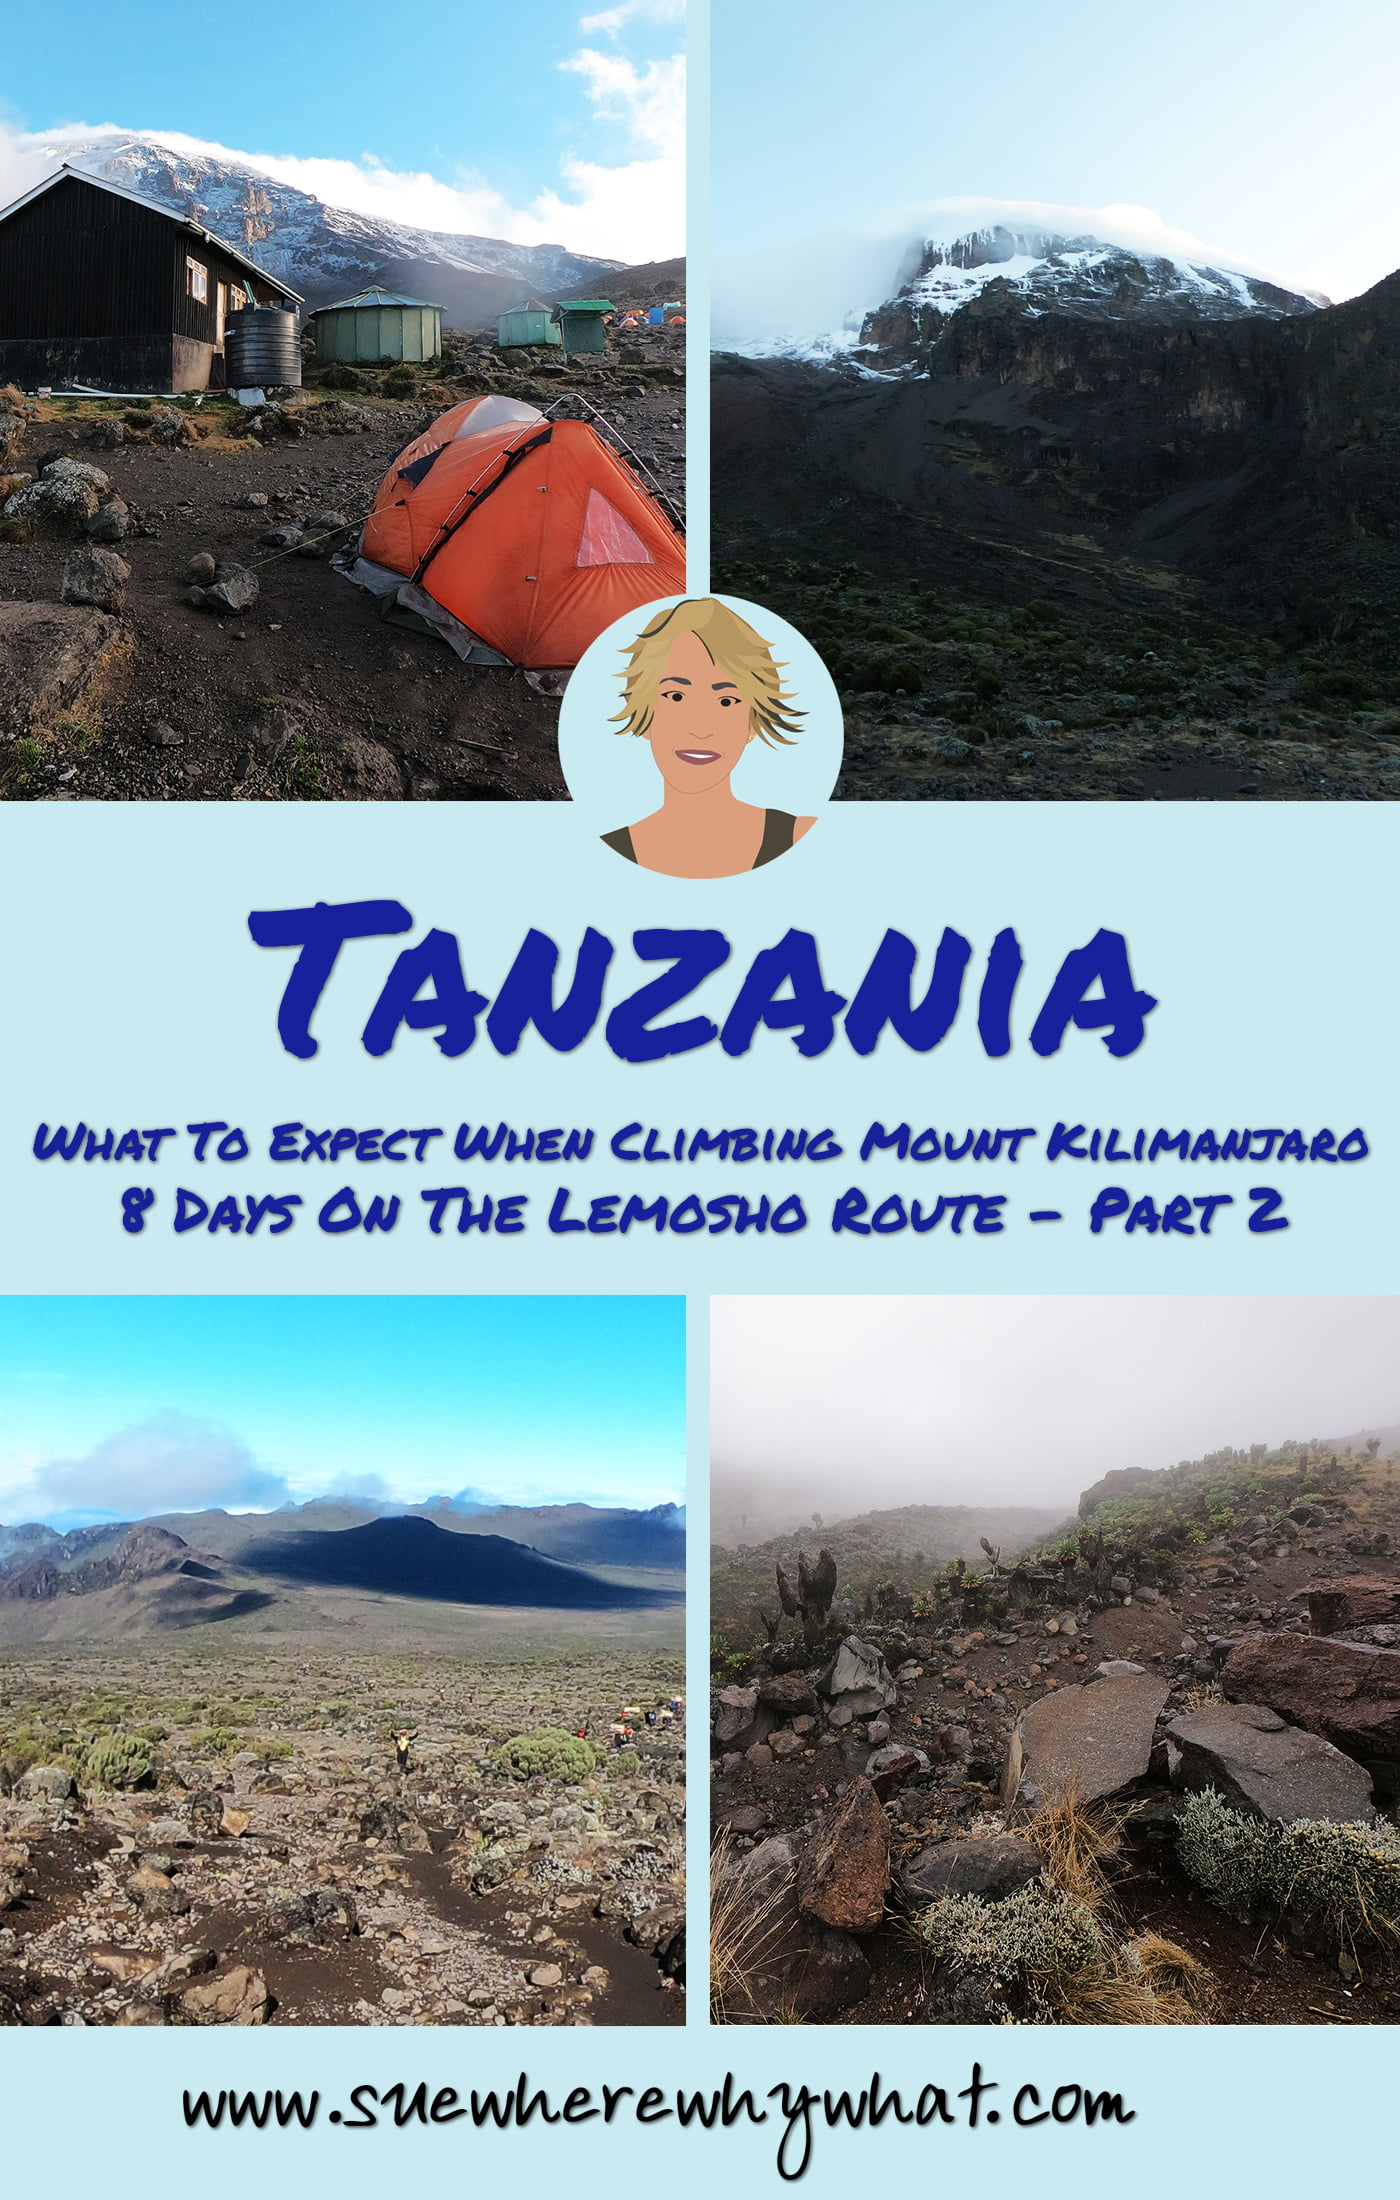 Read all about my adventures on the 8 day Lemosho Route to climb Mount Kilimanjaro. Includes Days 4 – 6 from Shira II to Barafu Base Camp, the impact of altitude, Baranco Wall, Kissing Rock & Lava Tower. If you have ever wondered what it is really like to attempt Africa's highest mountain, look no further for an honest account of what you can expect.